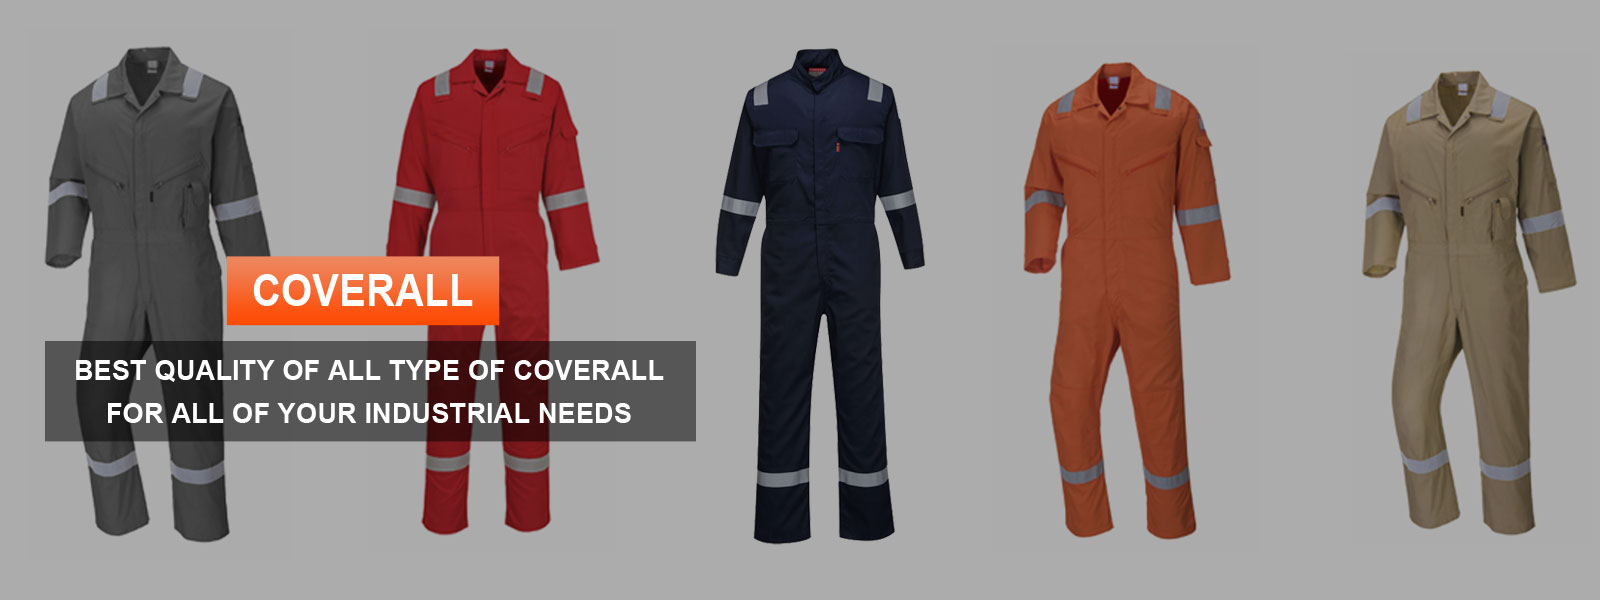 Coverall Manufacturers in Monaco